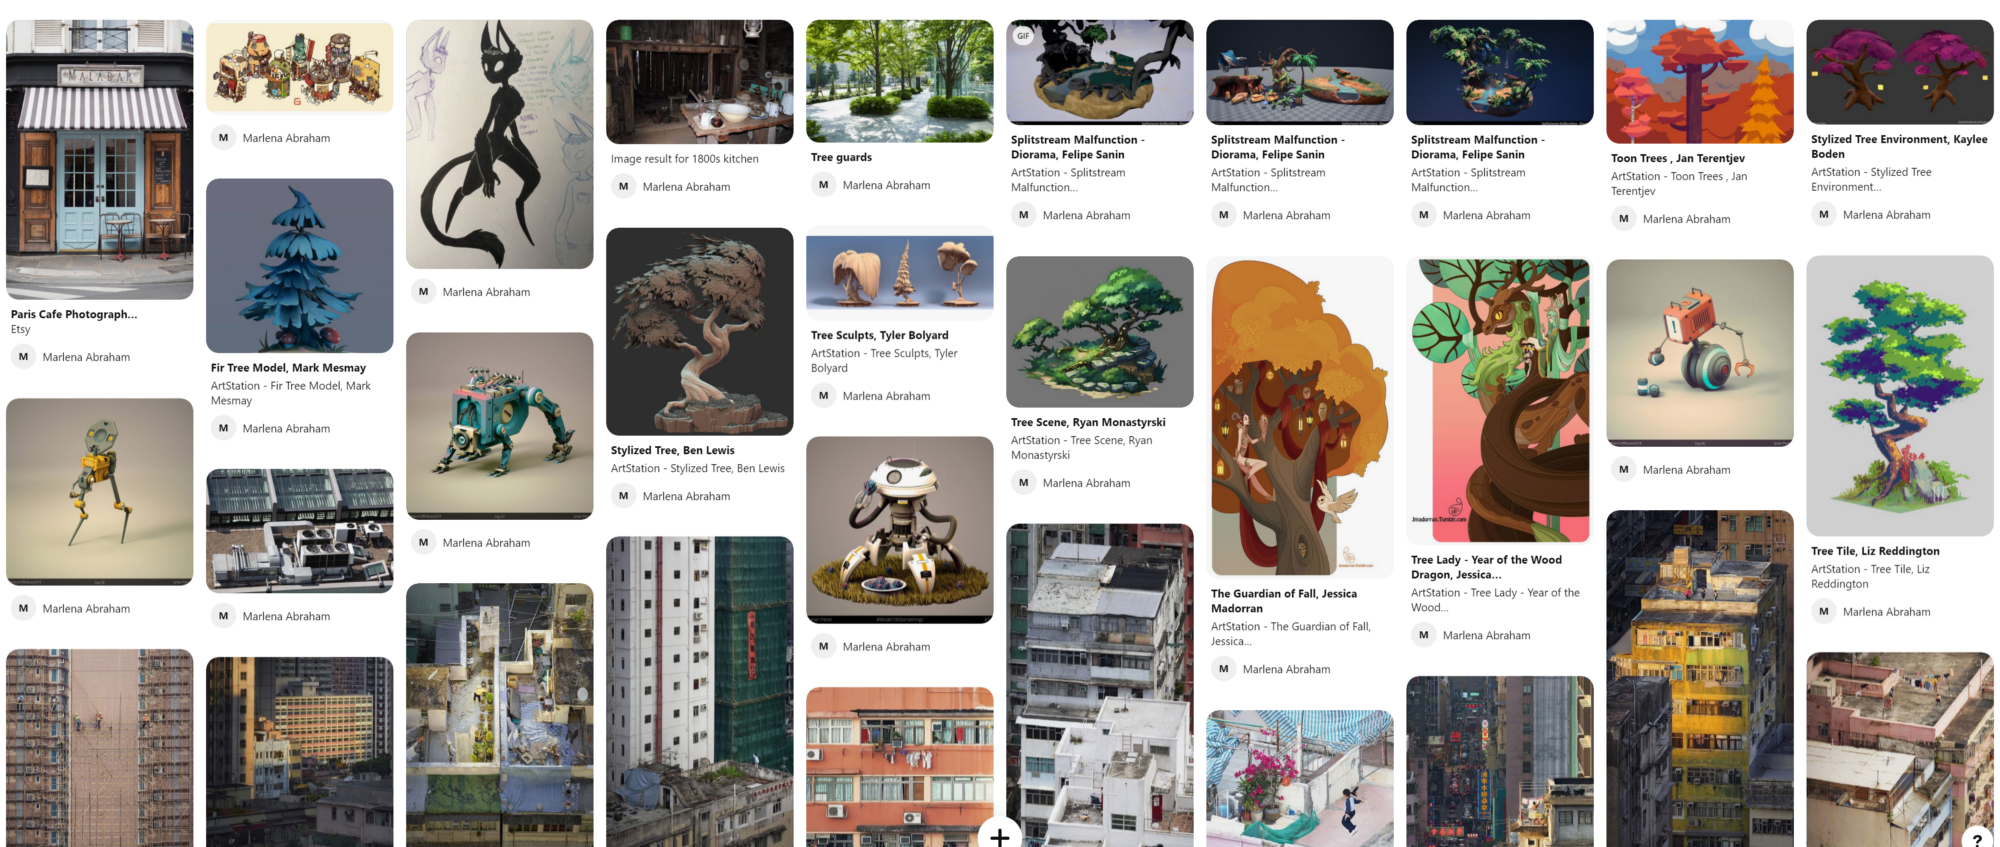 A mood board on Pinterest featuring apartments, skyscrapers, robots, and trees